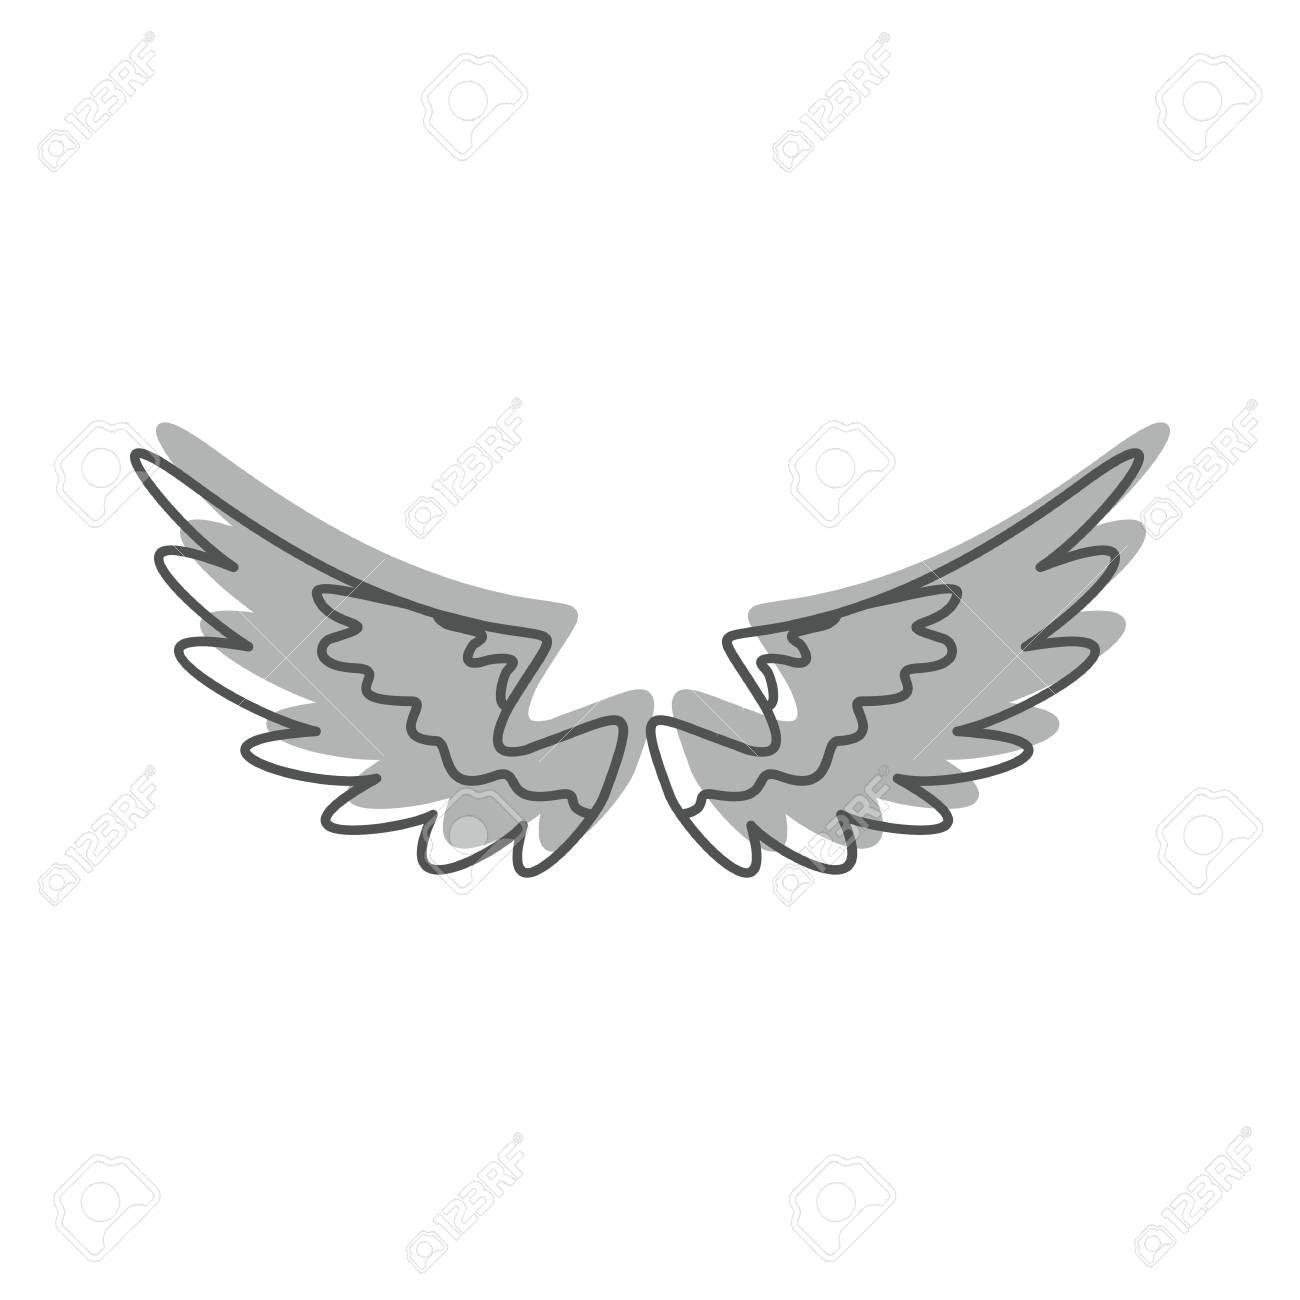 angel wings doodle icon vector illustration for design and web rh 123rf com wing logistics fall river wing logistics